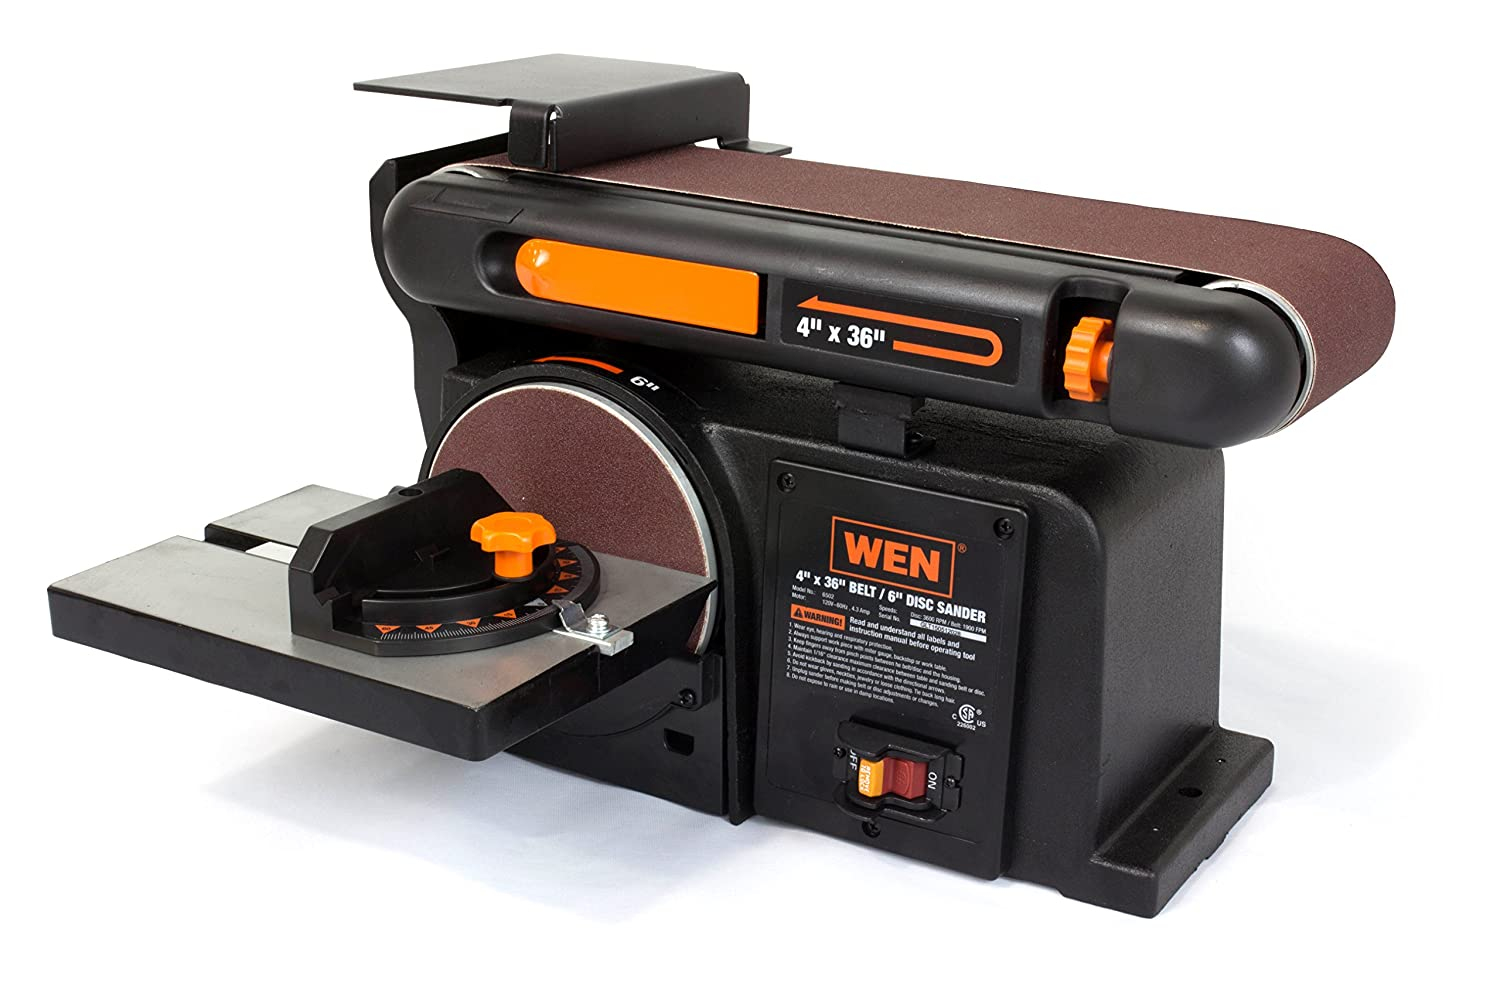 WEN 6502T 4.3-Amp 4 x 36 in. Belt and 6 in. Disc Sander with Cast Iron Base